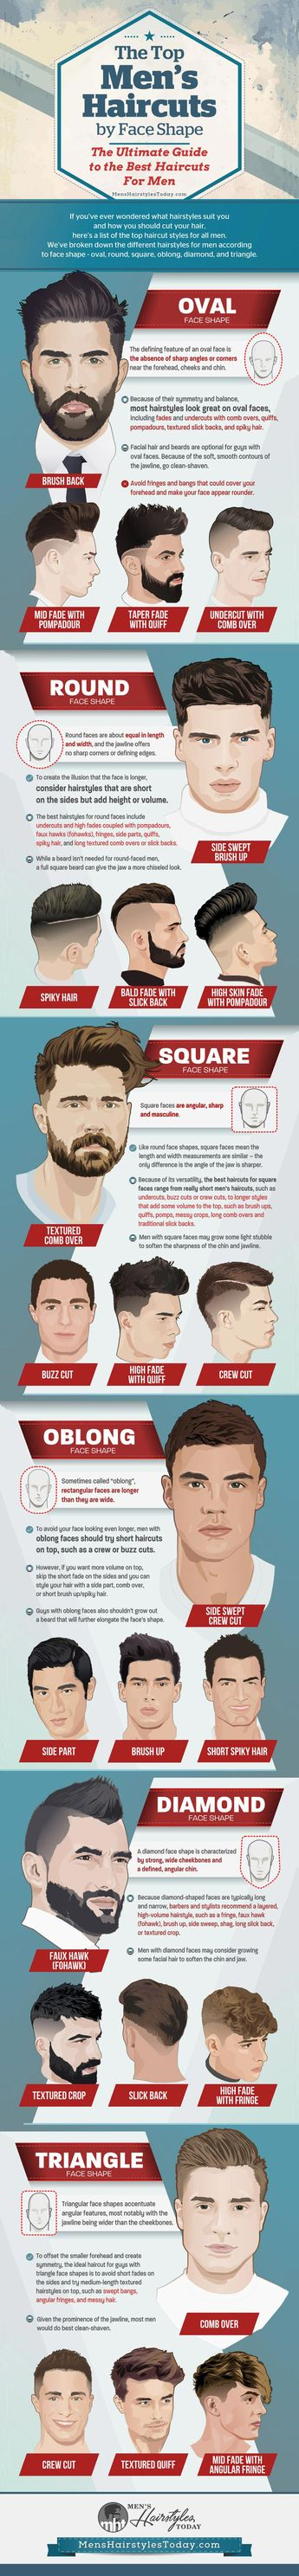 Best Men S Hairstyle According To Face Shape Infographic Mens Hairstyles Cool Hairstyles For Men Thick Hair Styles